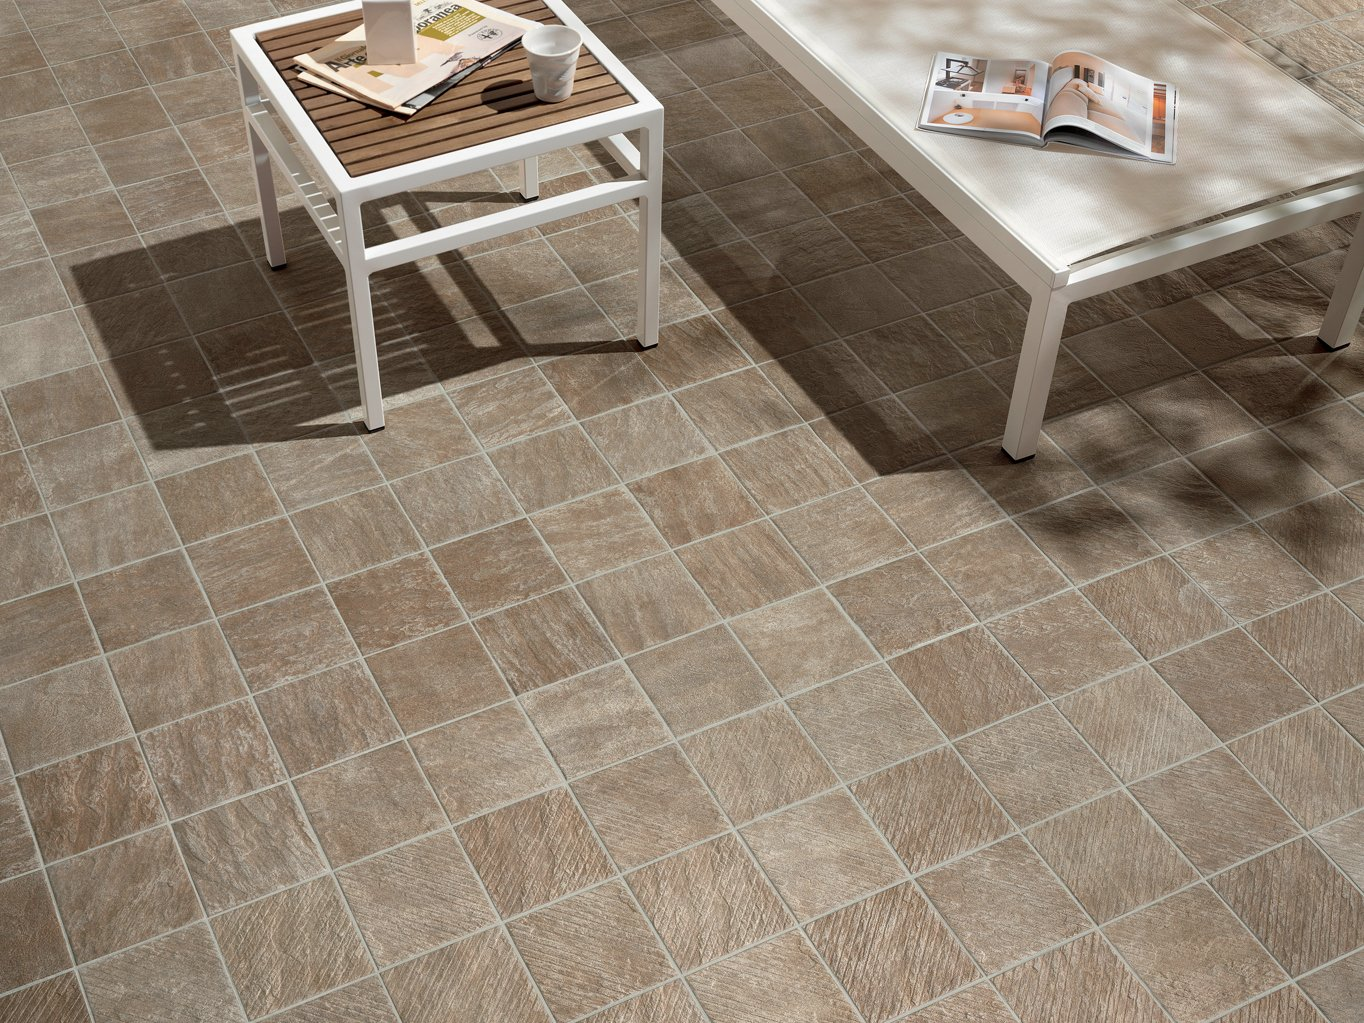 Porcelain stoneware outdoor floor tiles alpi pordoi by for Exterior floor tiles